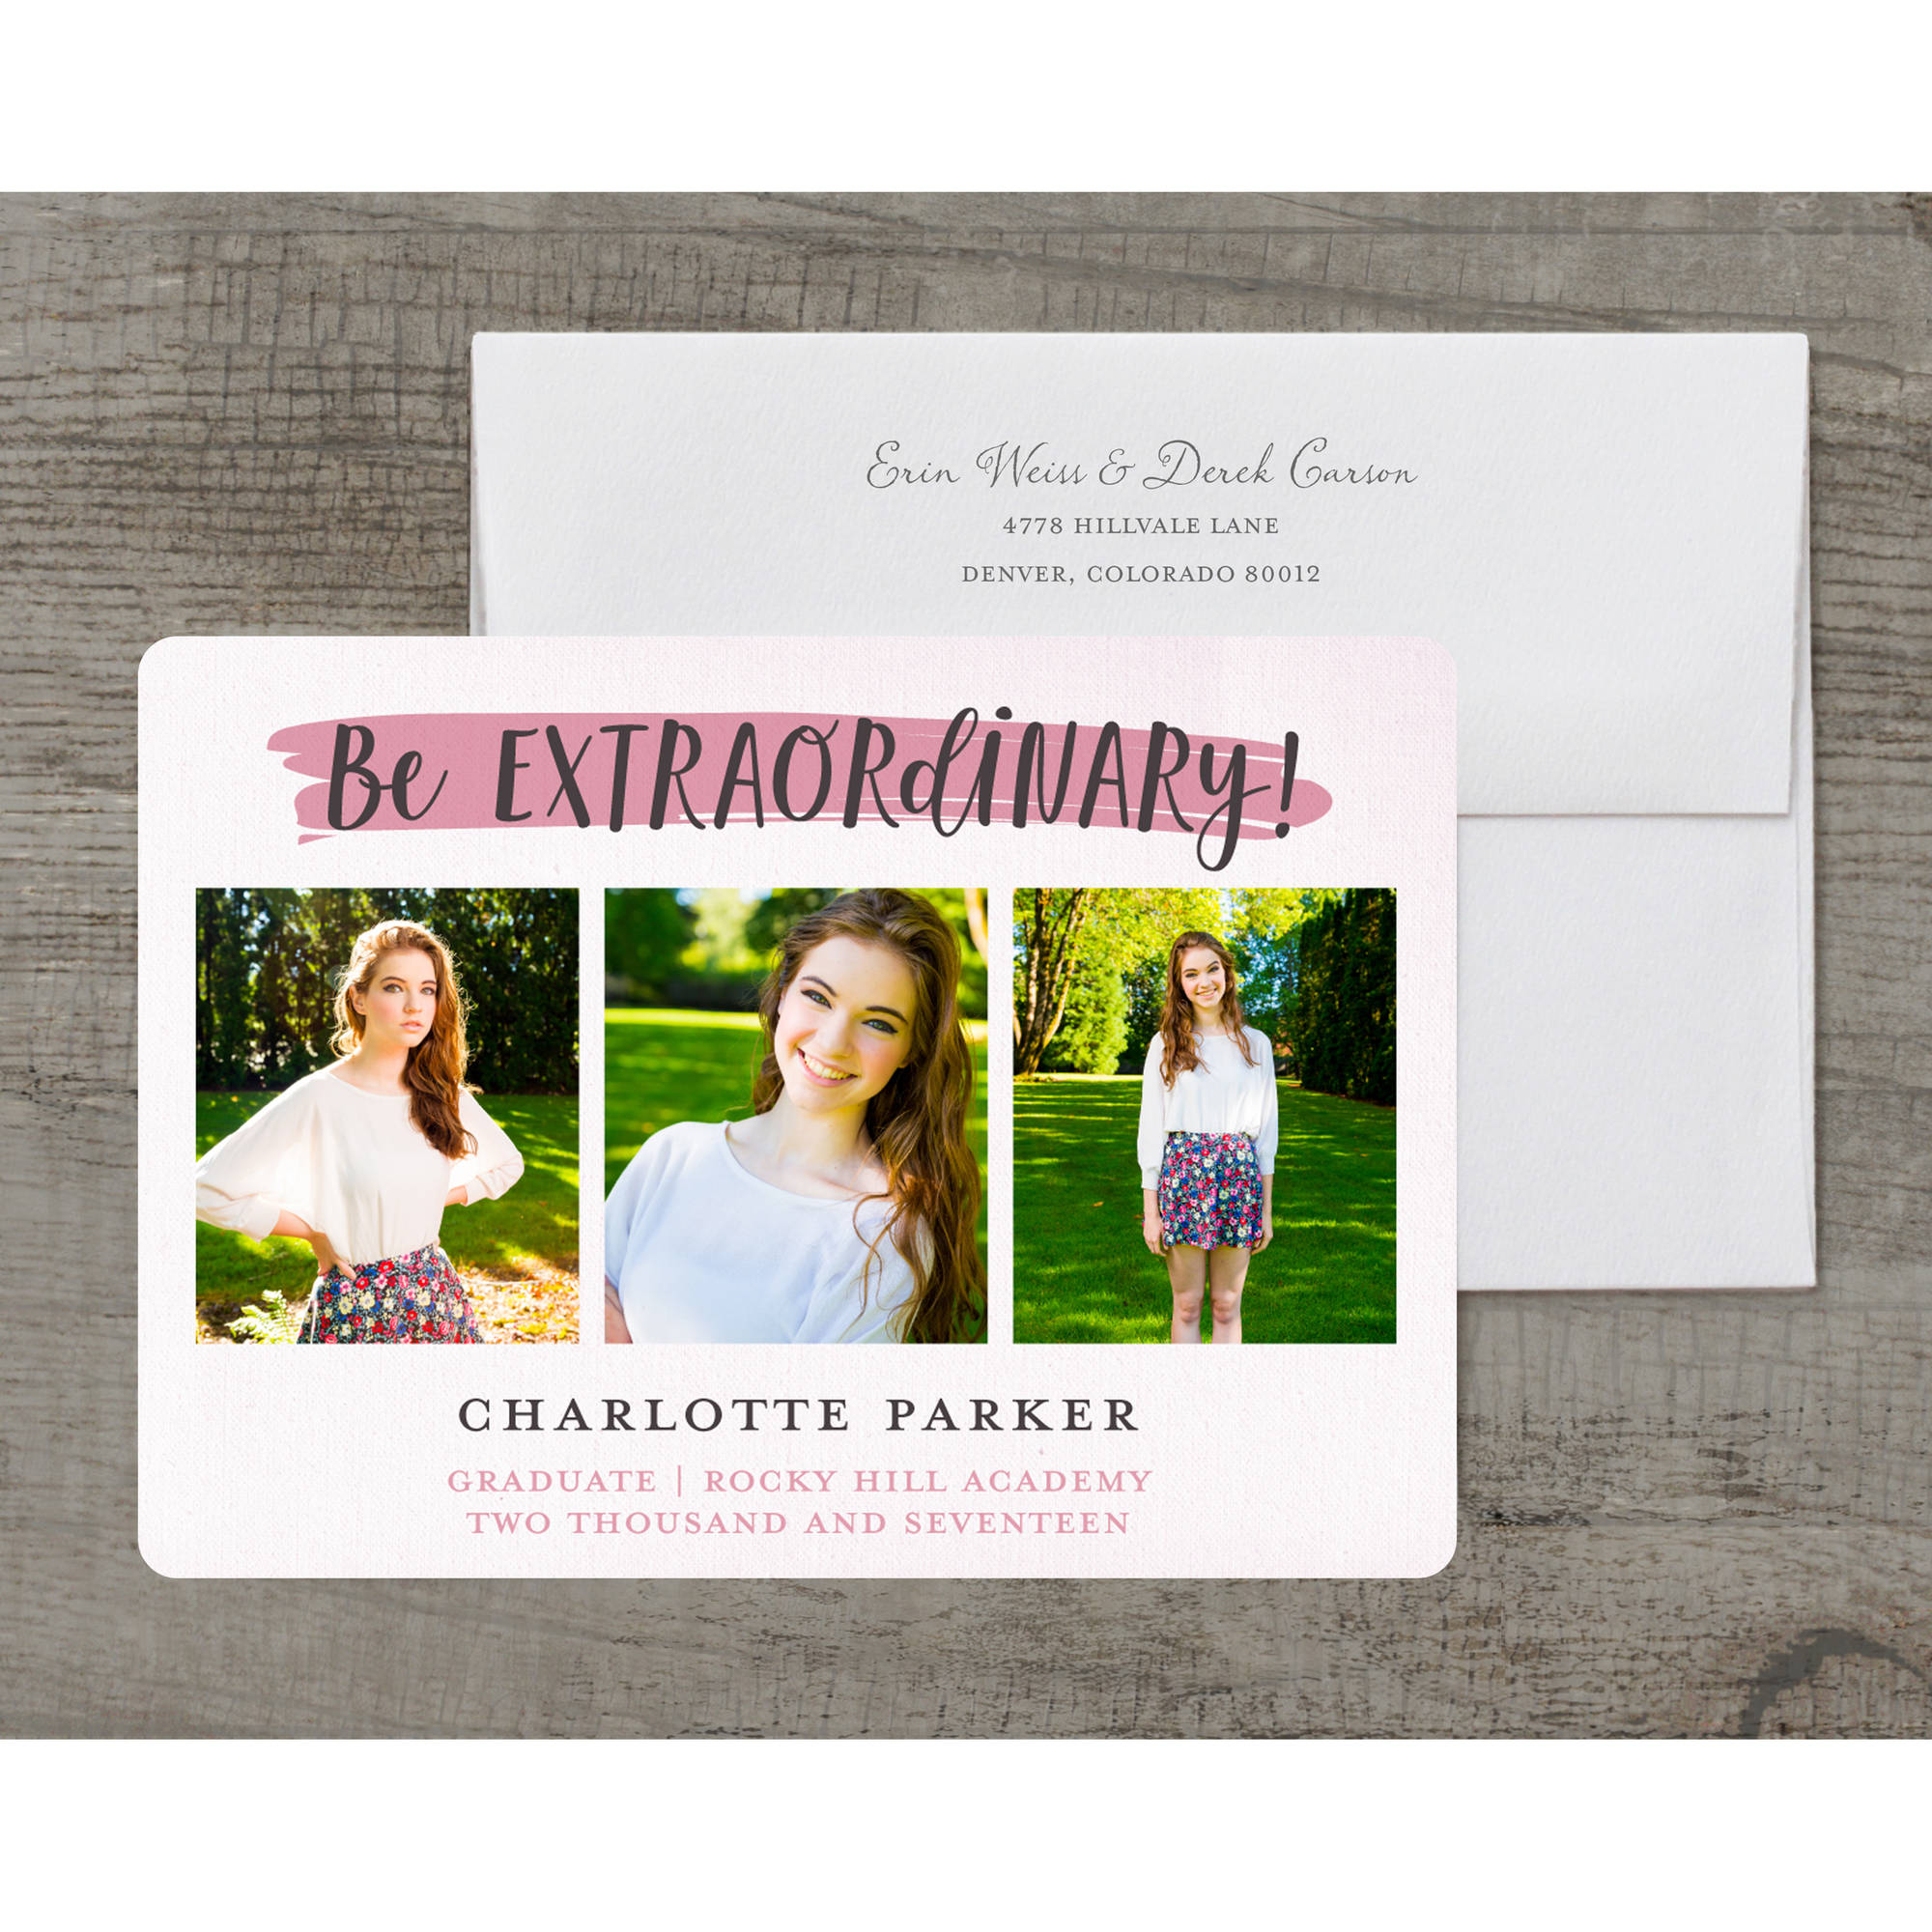 Going Places Deluxe Graduation Announcement